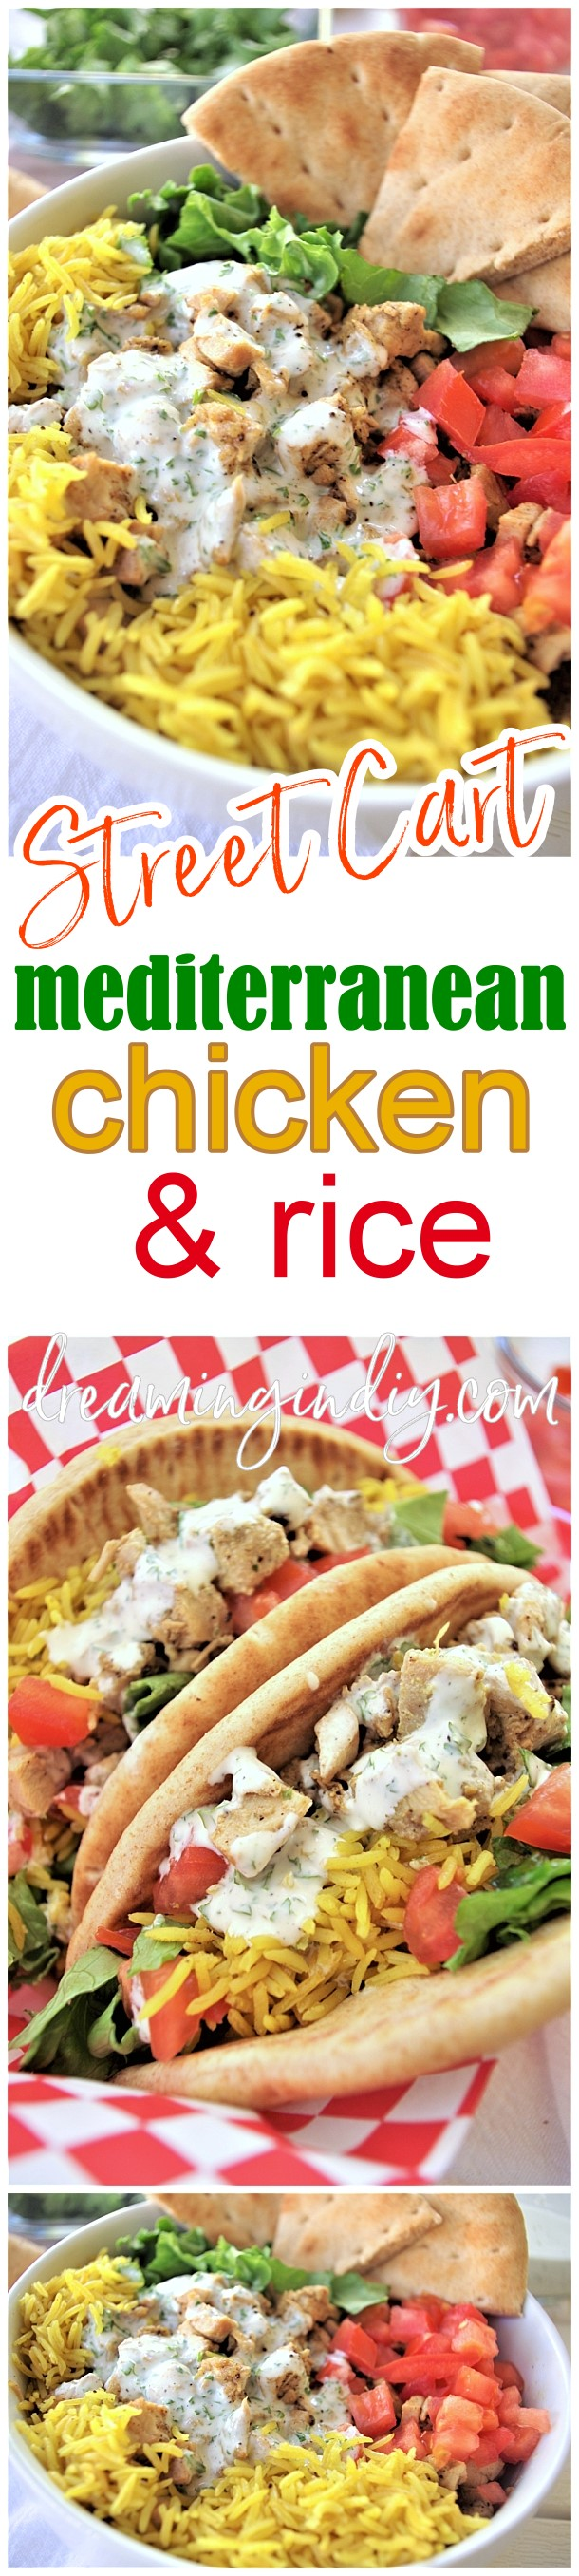 "Easy and Delicious Street Cart Mediterranean Chicken and Rice Bowls or Pitas Sandwich Quick and Simple Recipes via Dreaming in DIY - This street vendor cart style chicken and rice recipe is PACKED with amazing Mediterranean flavors! #streetcartfood #streetcartchickenandrice #yellowrice #halalchickenandrice #halalstyle #halal #chickenandrice #chickenrecipes #streetcartstylefood #cookout #partyfood #summerfood #chicken #rice The sauce is what really elevates this recipe from ""delicious and we really liked it"" to ""Total keeper - must make again SOON!"" status."